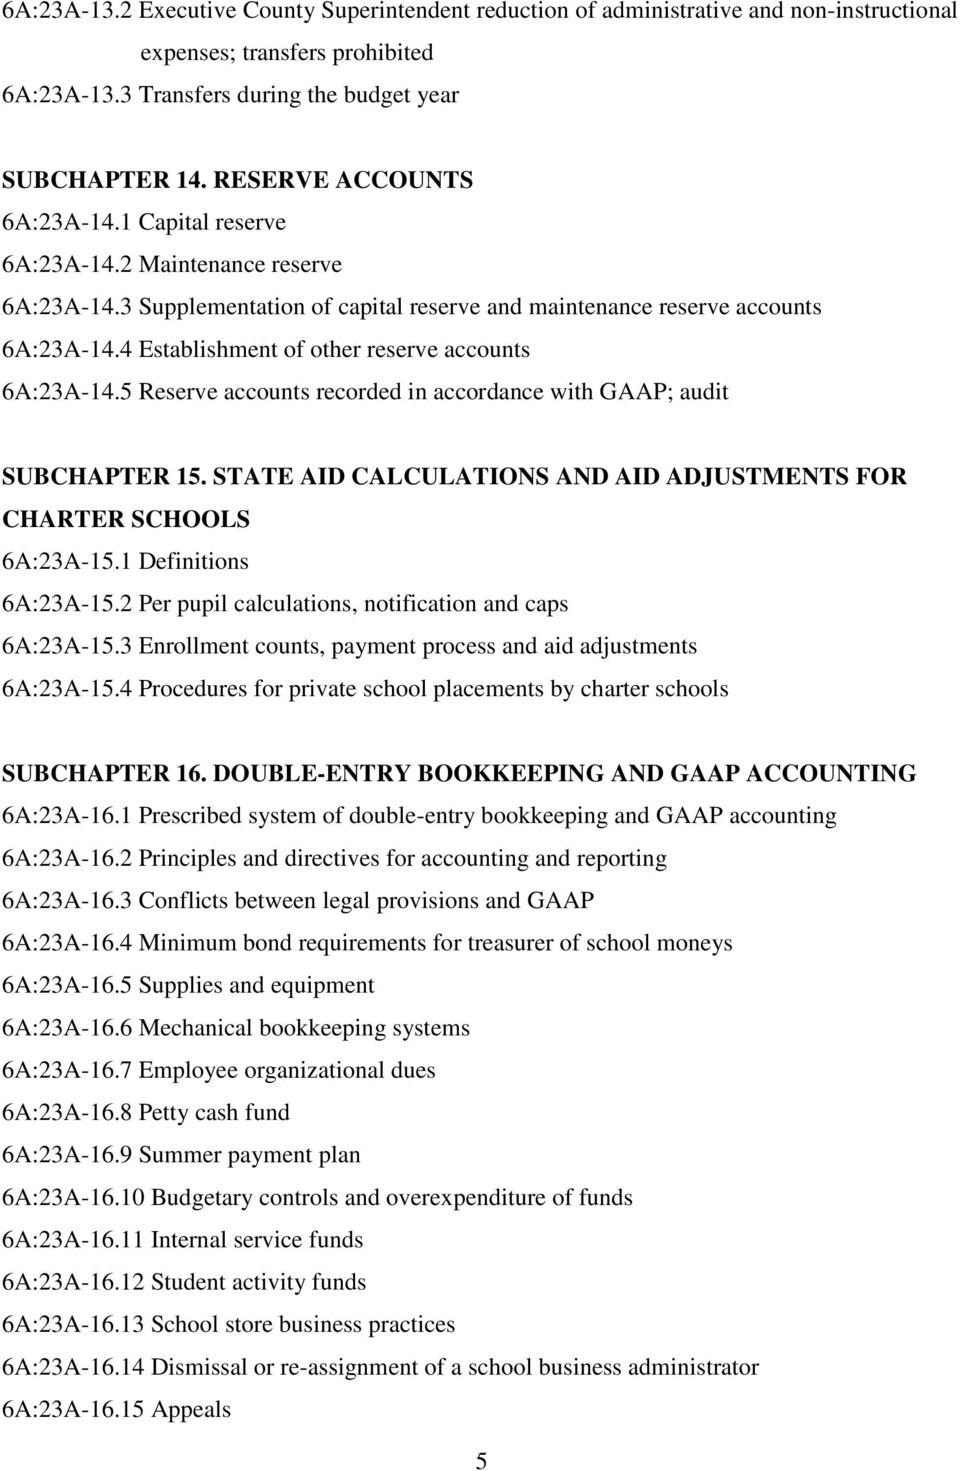 4 Establishment of other reserve accounts 6A:23A-14.5 Reserve accounts recorded in accordance with GAAP; audit SUBCHAPTER 15. STATE AID CALCULATIONS AND AID ADJUSTMENTS FOR CHARTER SCHOOLS 6A:23A-15.